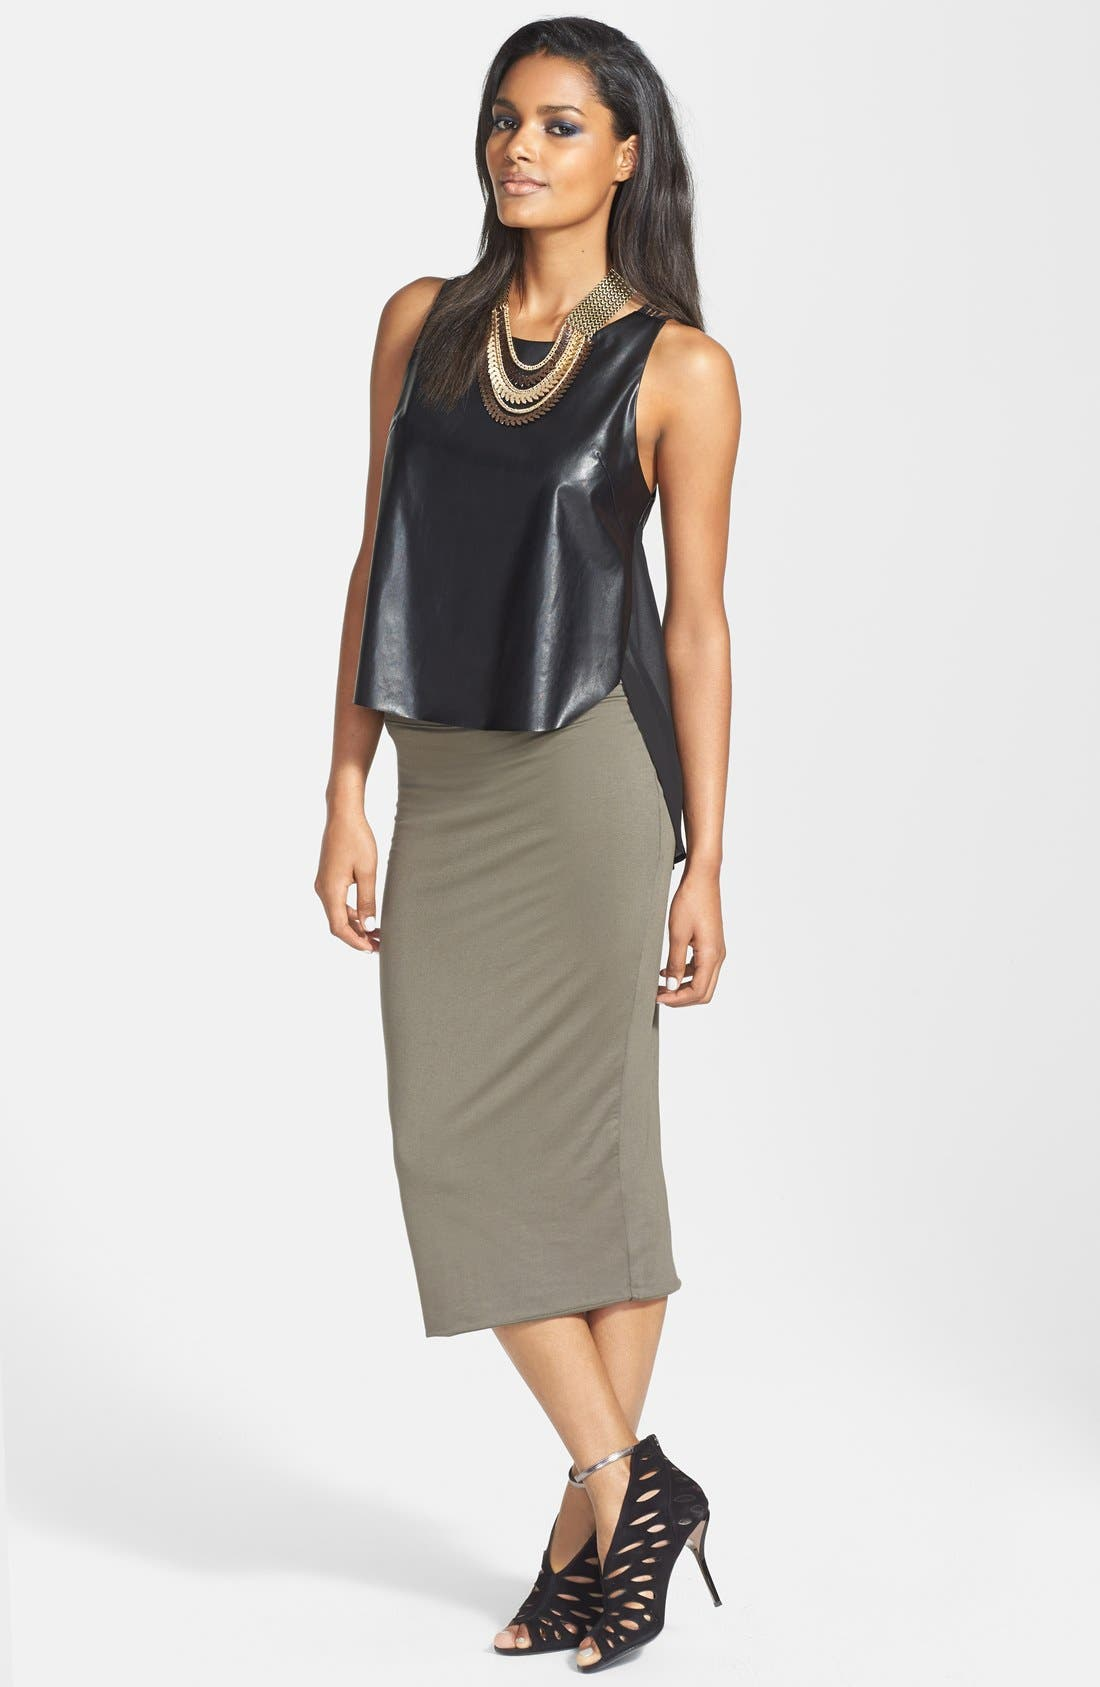 Alternate Image 1 Selected - ASTR Chiffon Panel Faux Leather Tank